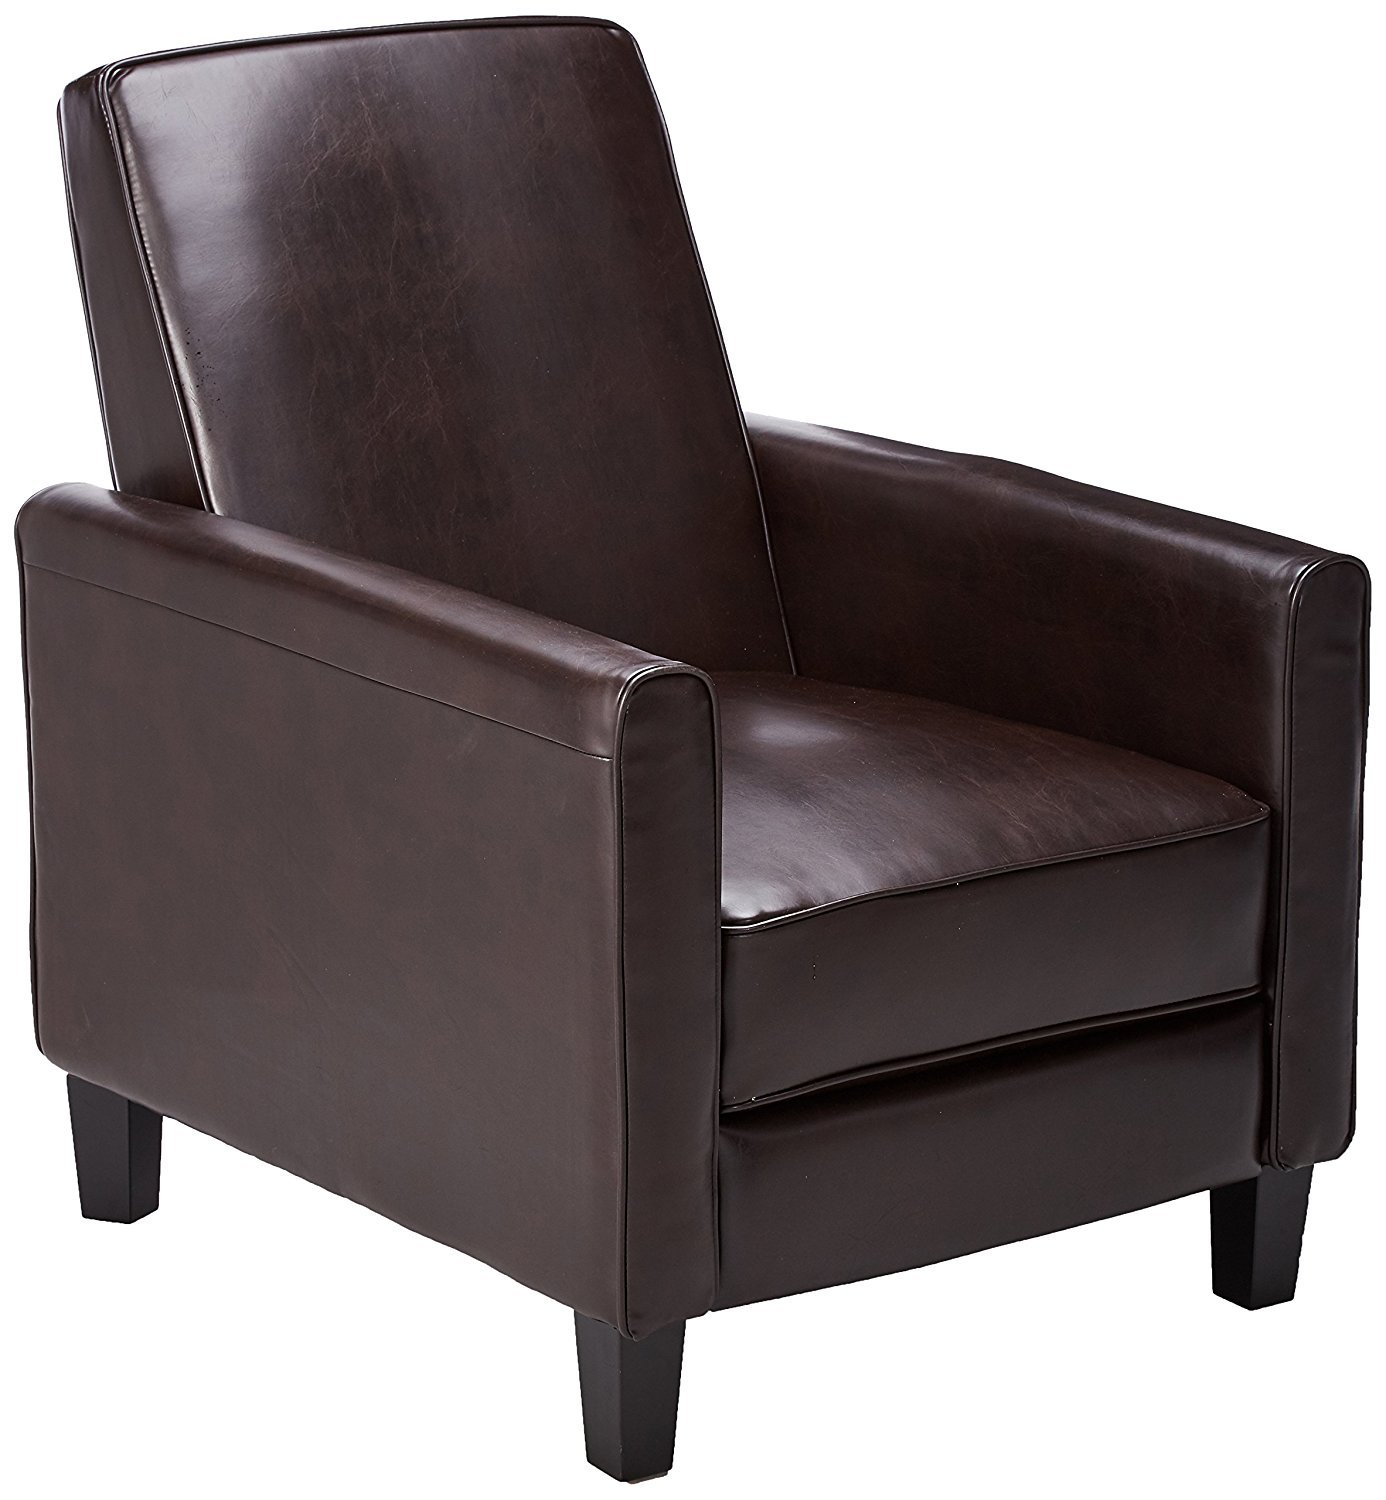 Best Selling Leather Recliner Club Chair Home Furniture